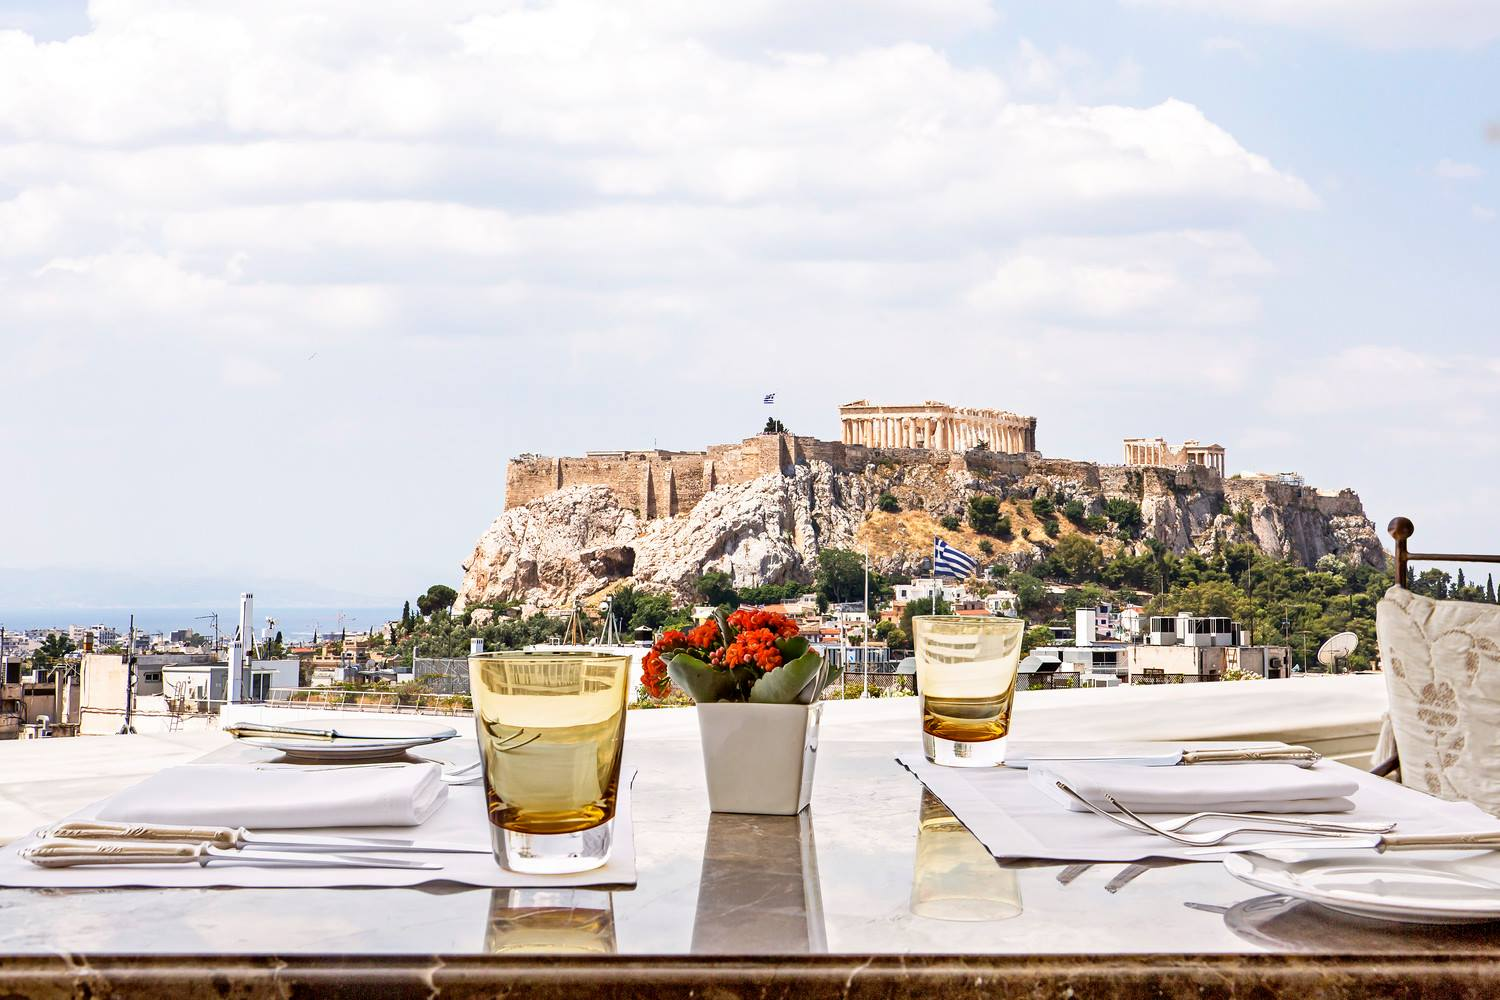 View of the Acropolis from the King George Hotel